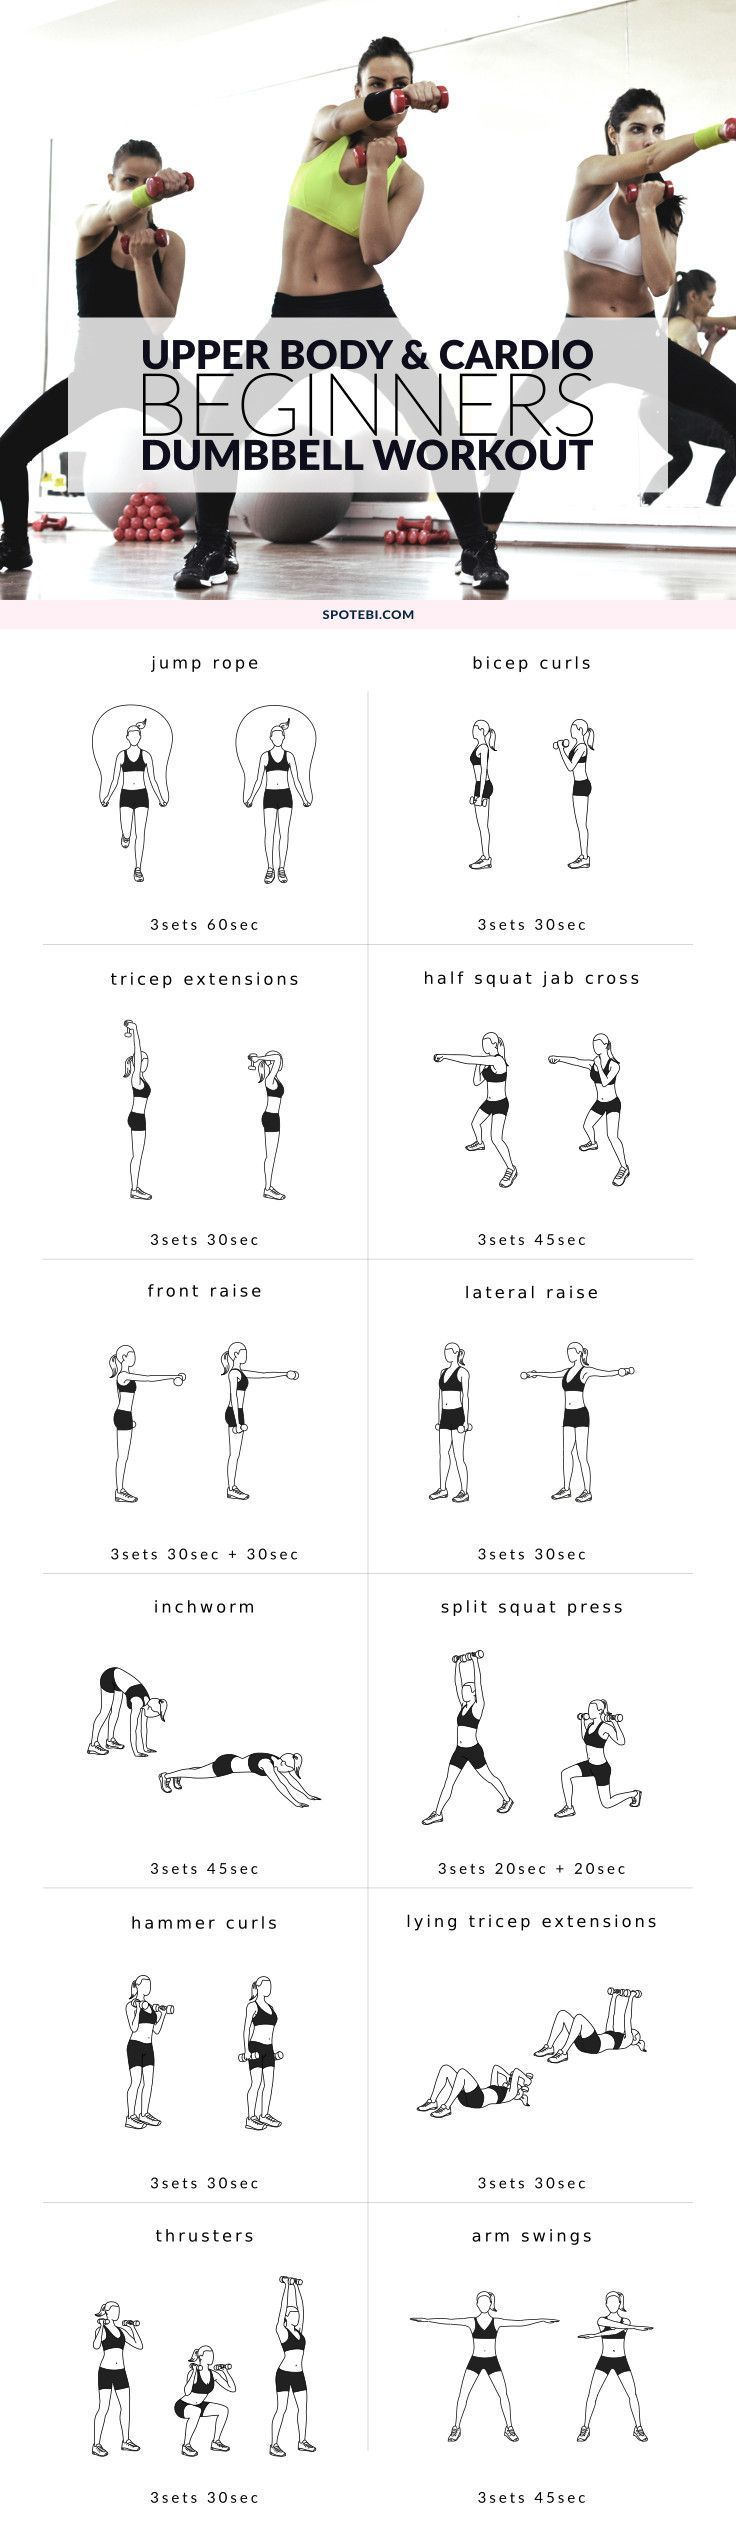 cool Upper Body & Cardio Beginners Workout